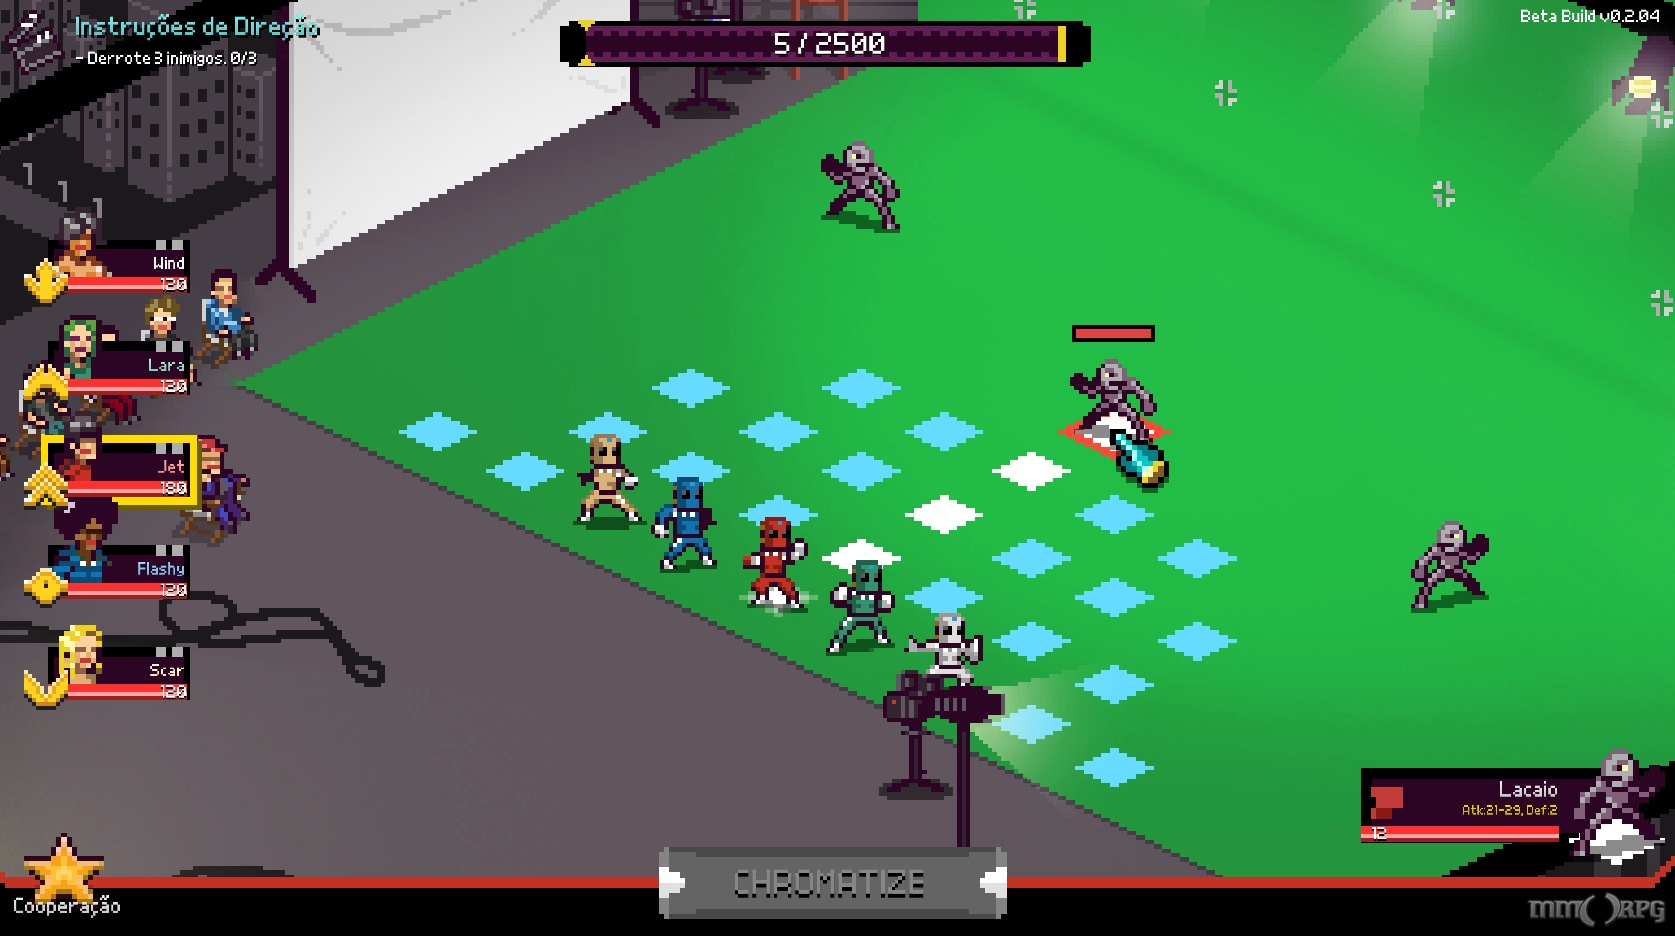 Chroma Squad is an RPG inspired by Power Rangers and other sentai TV shows. You take on an indie studio and create your own TV show.